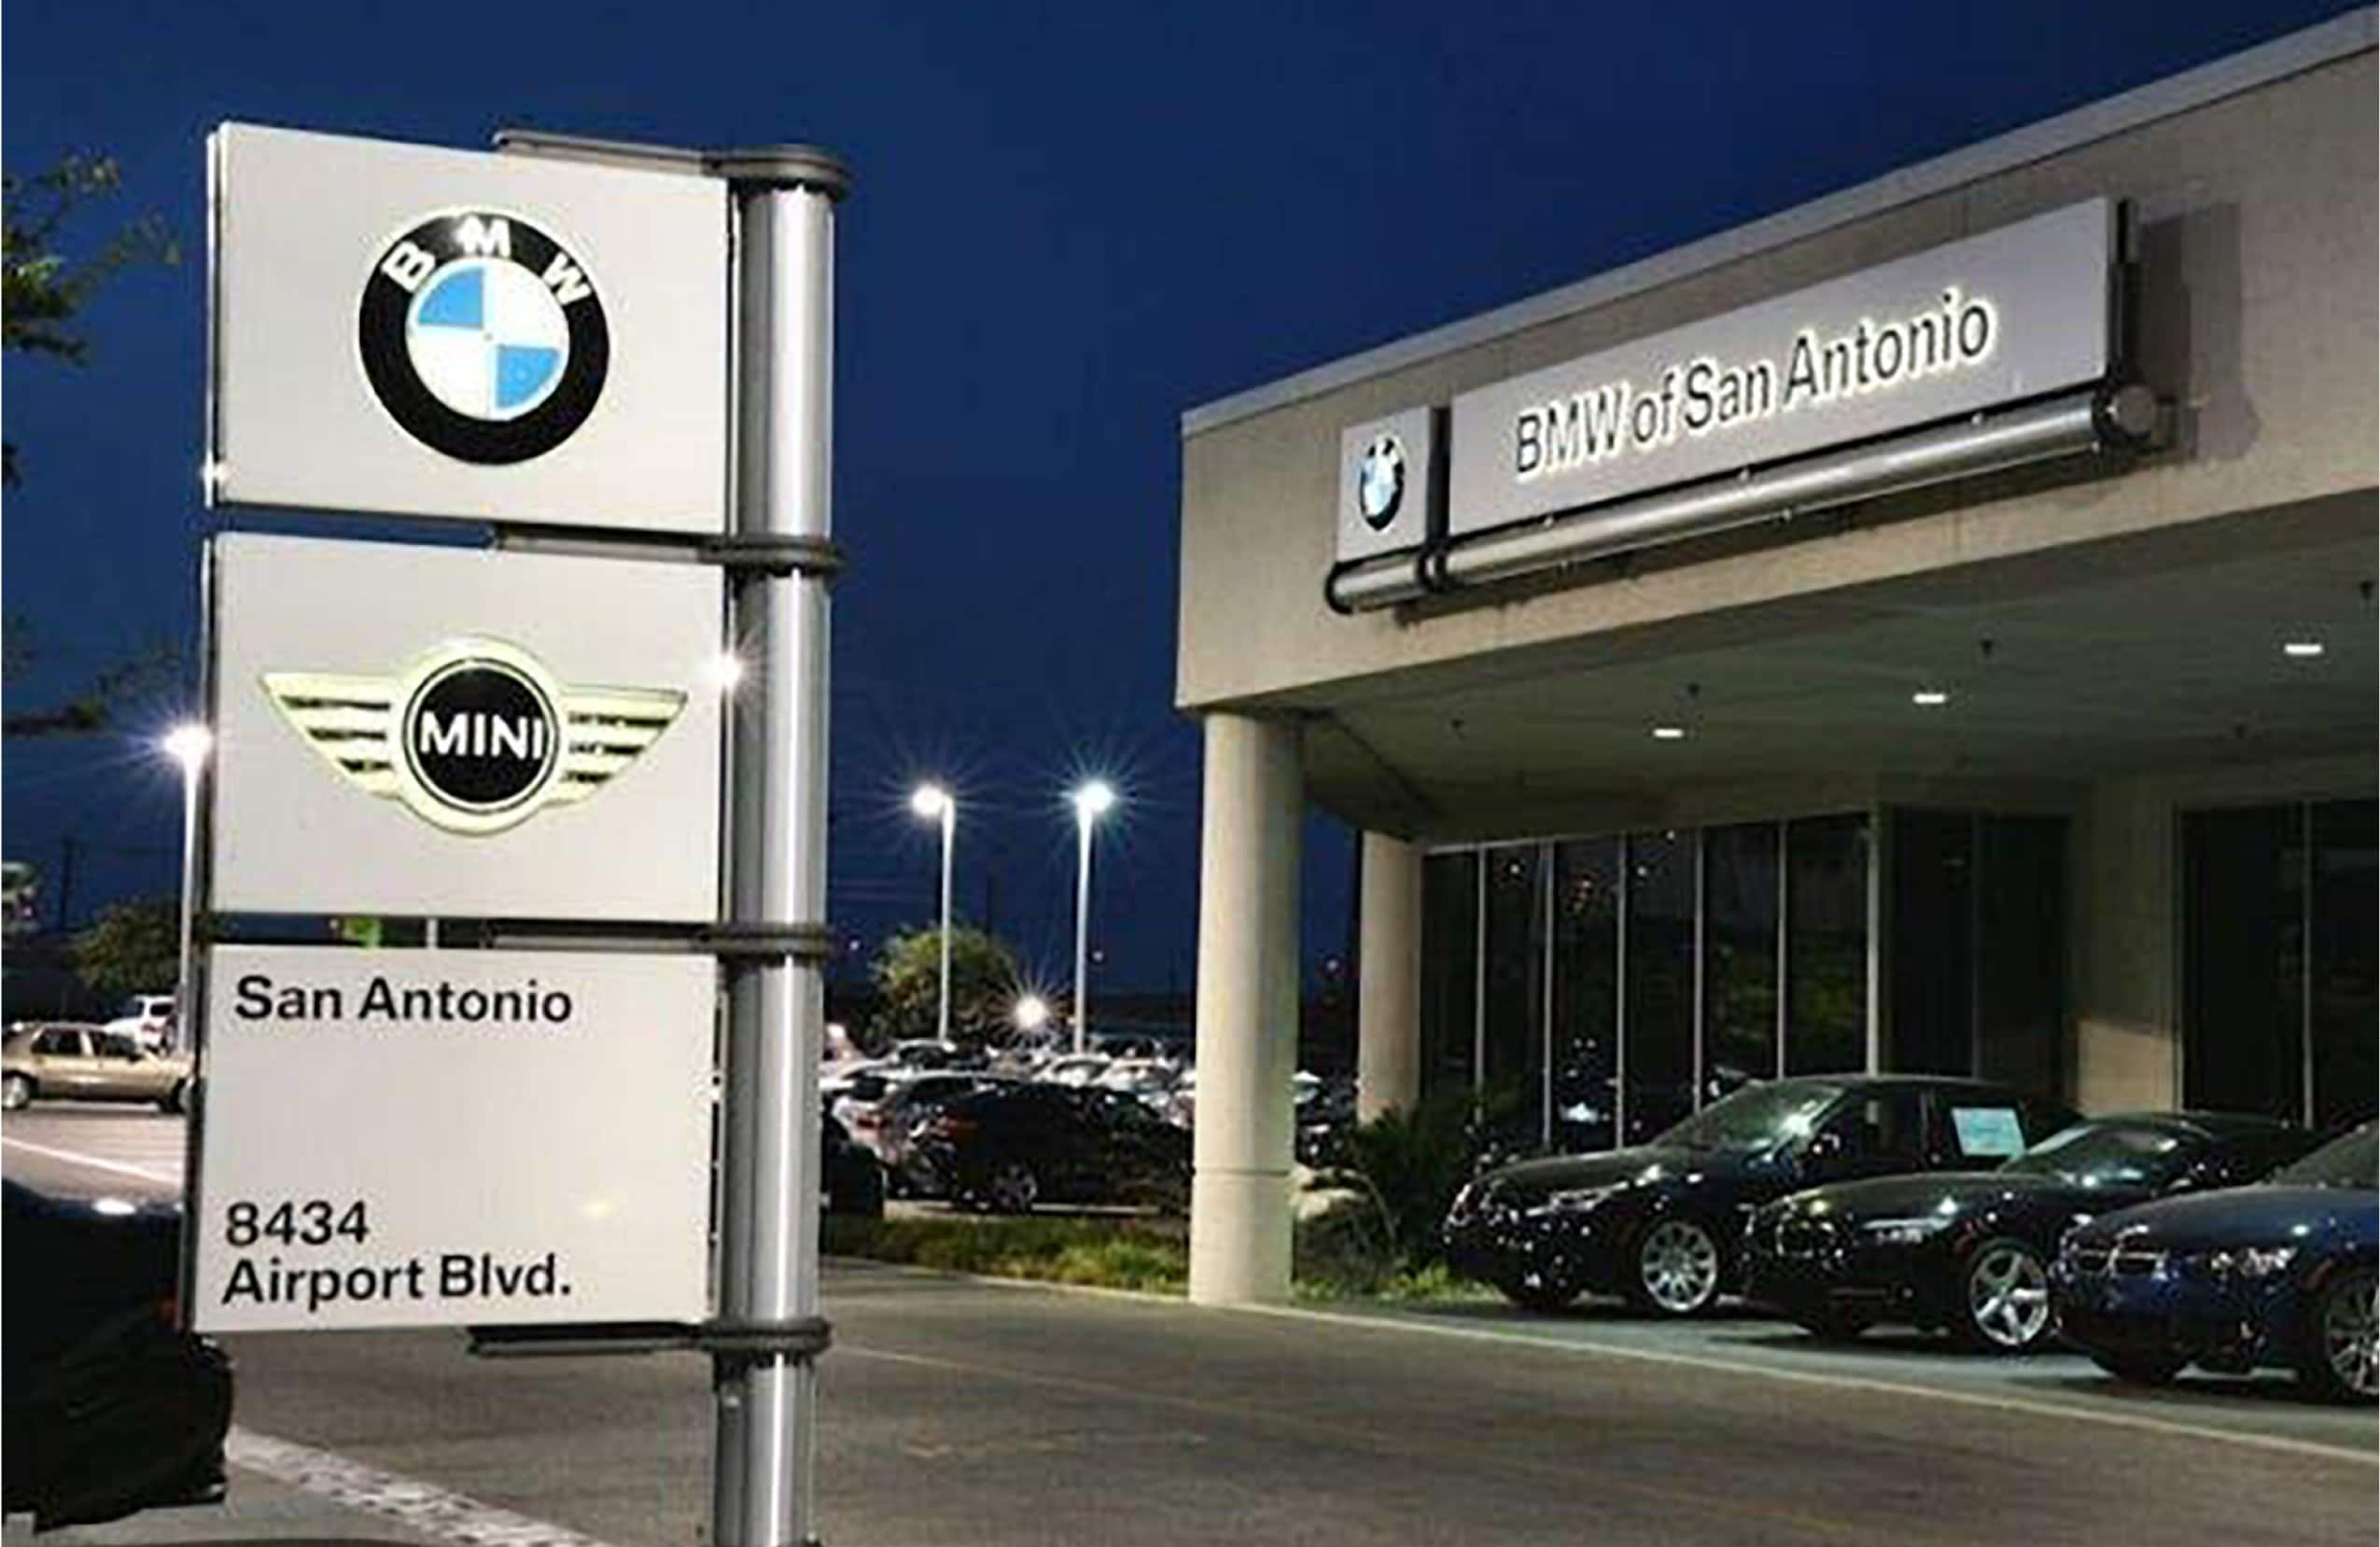 San Antonio Used Cars Inspirational About Bmw Of San Antonio